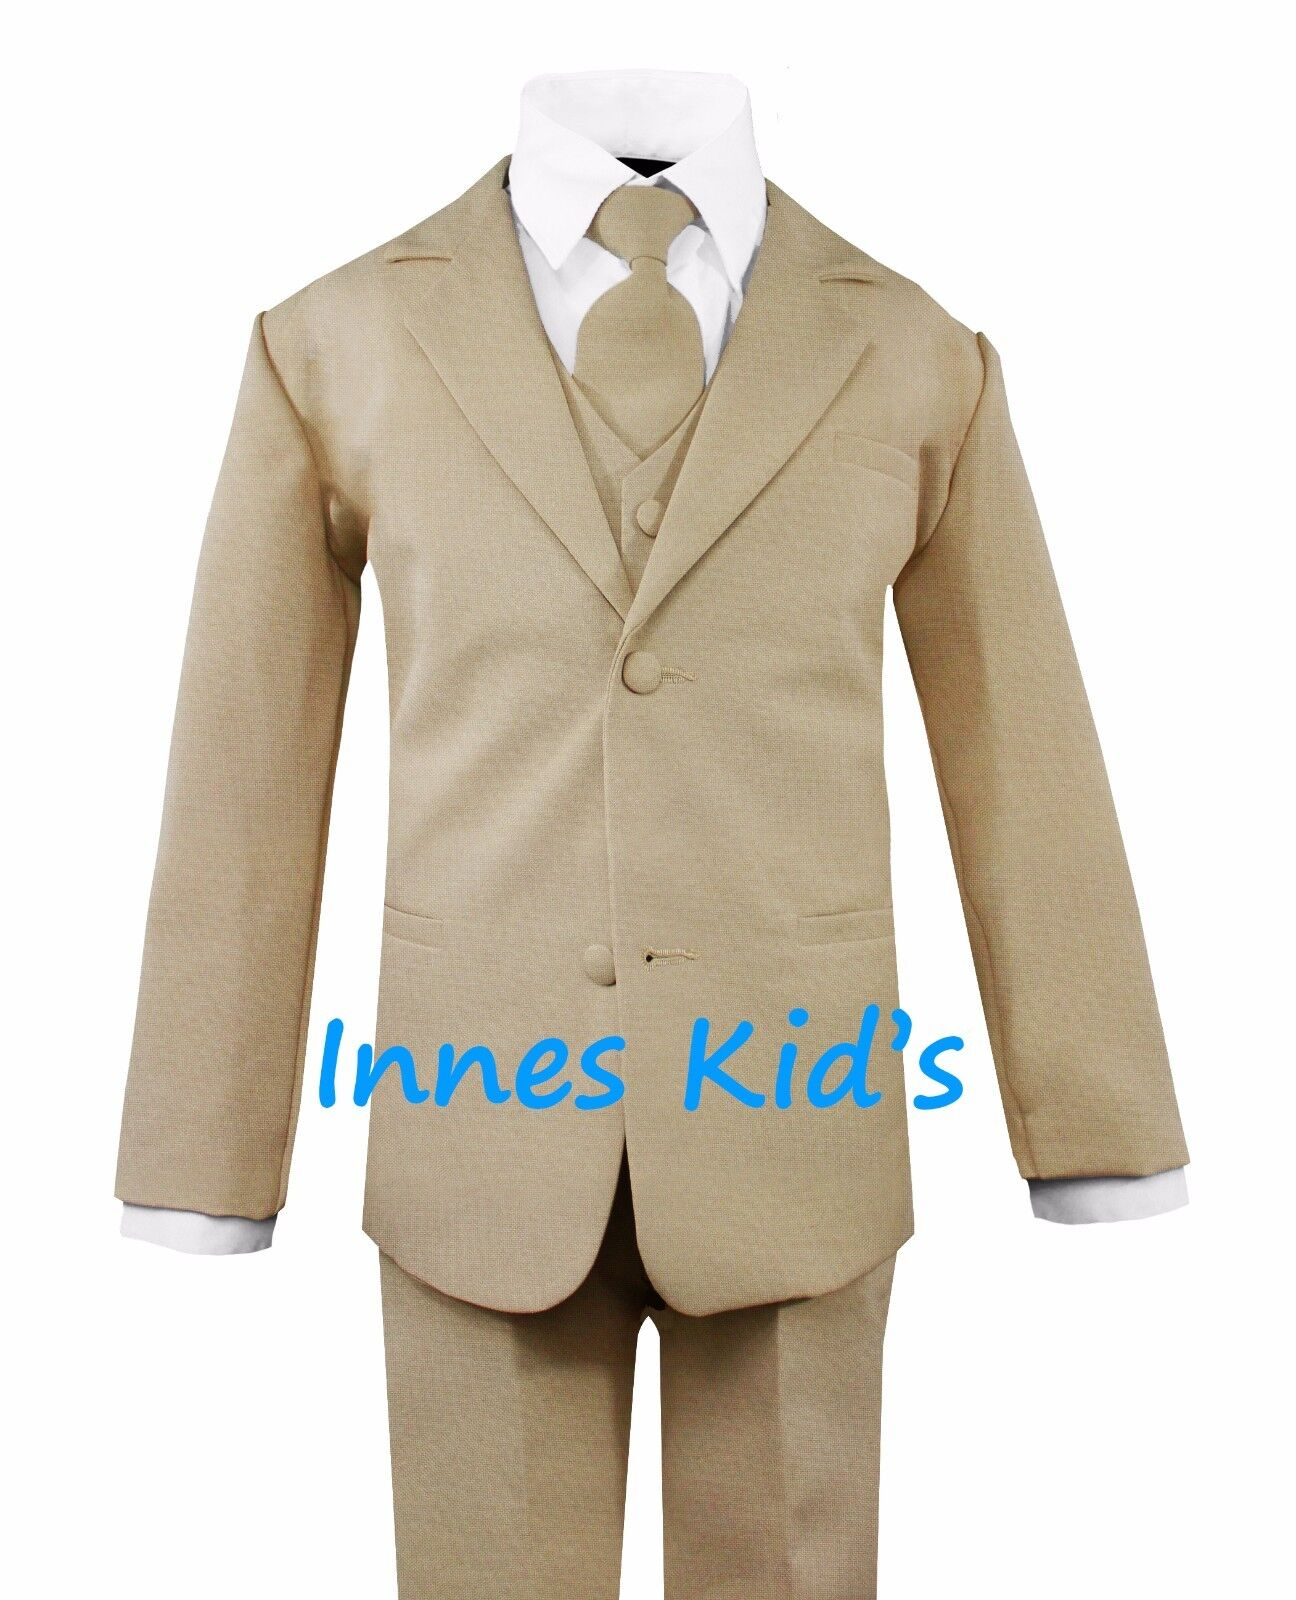 Boys Communion Suit Boys Navy Suit First Communion Chalice Tie 5-14 years